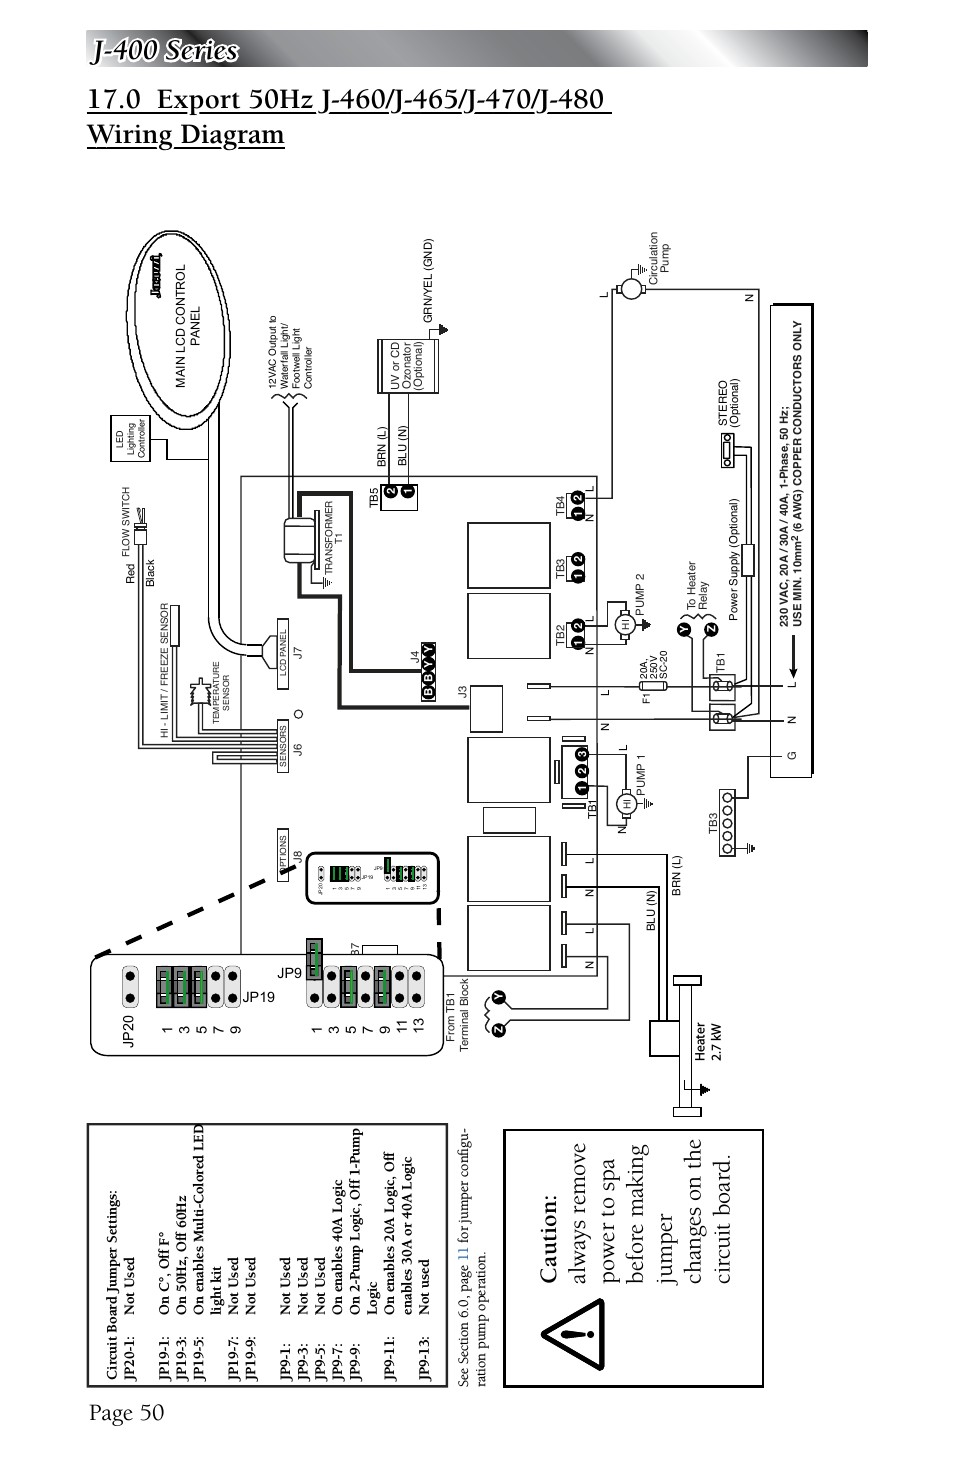 hight resolution of hl 630 wiring diagram spa wiring diagram inside hl 630 wiring diagram spa